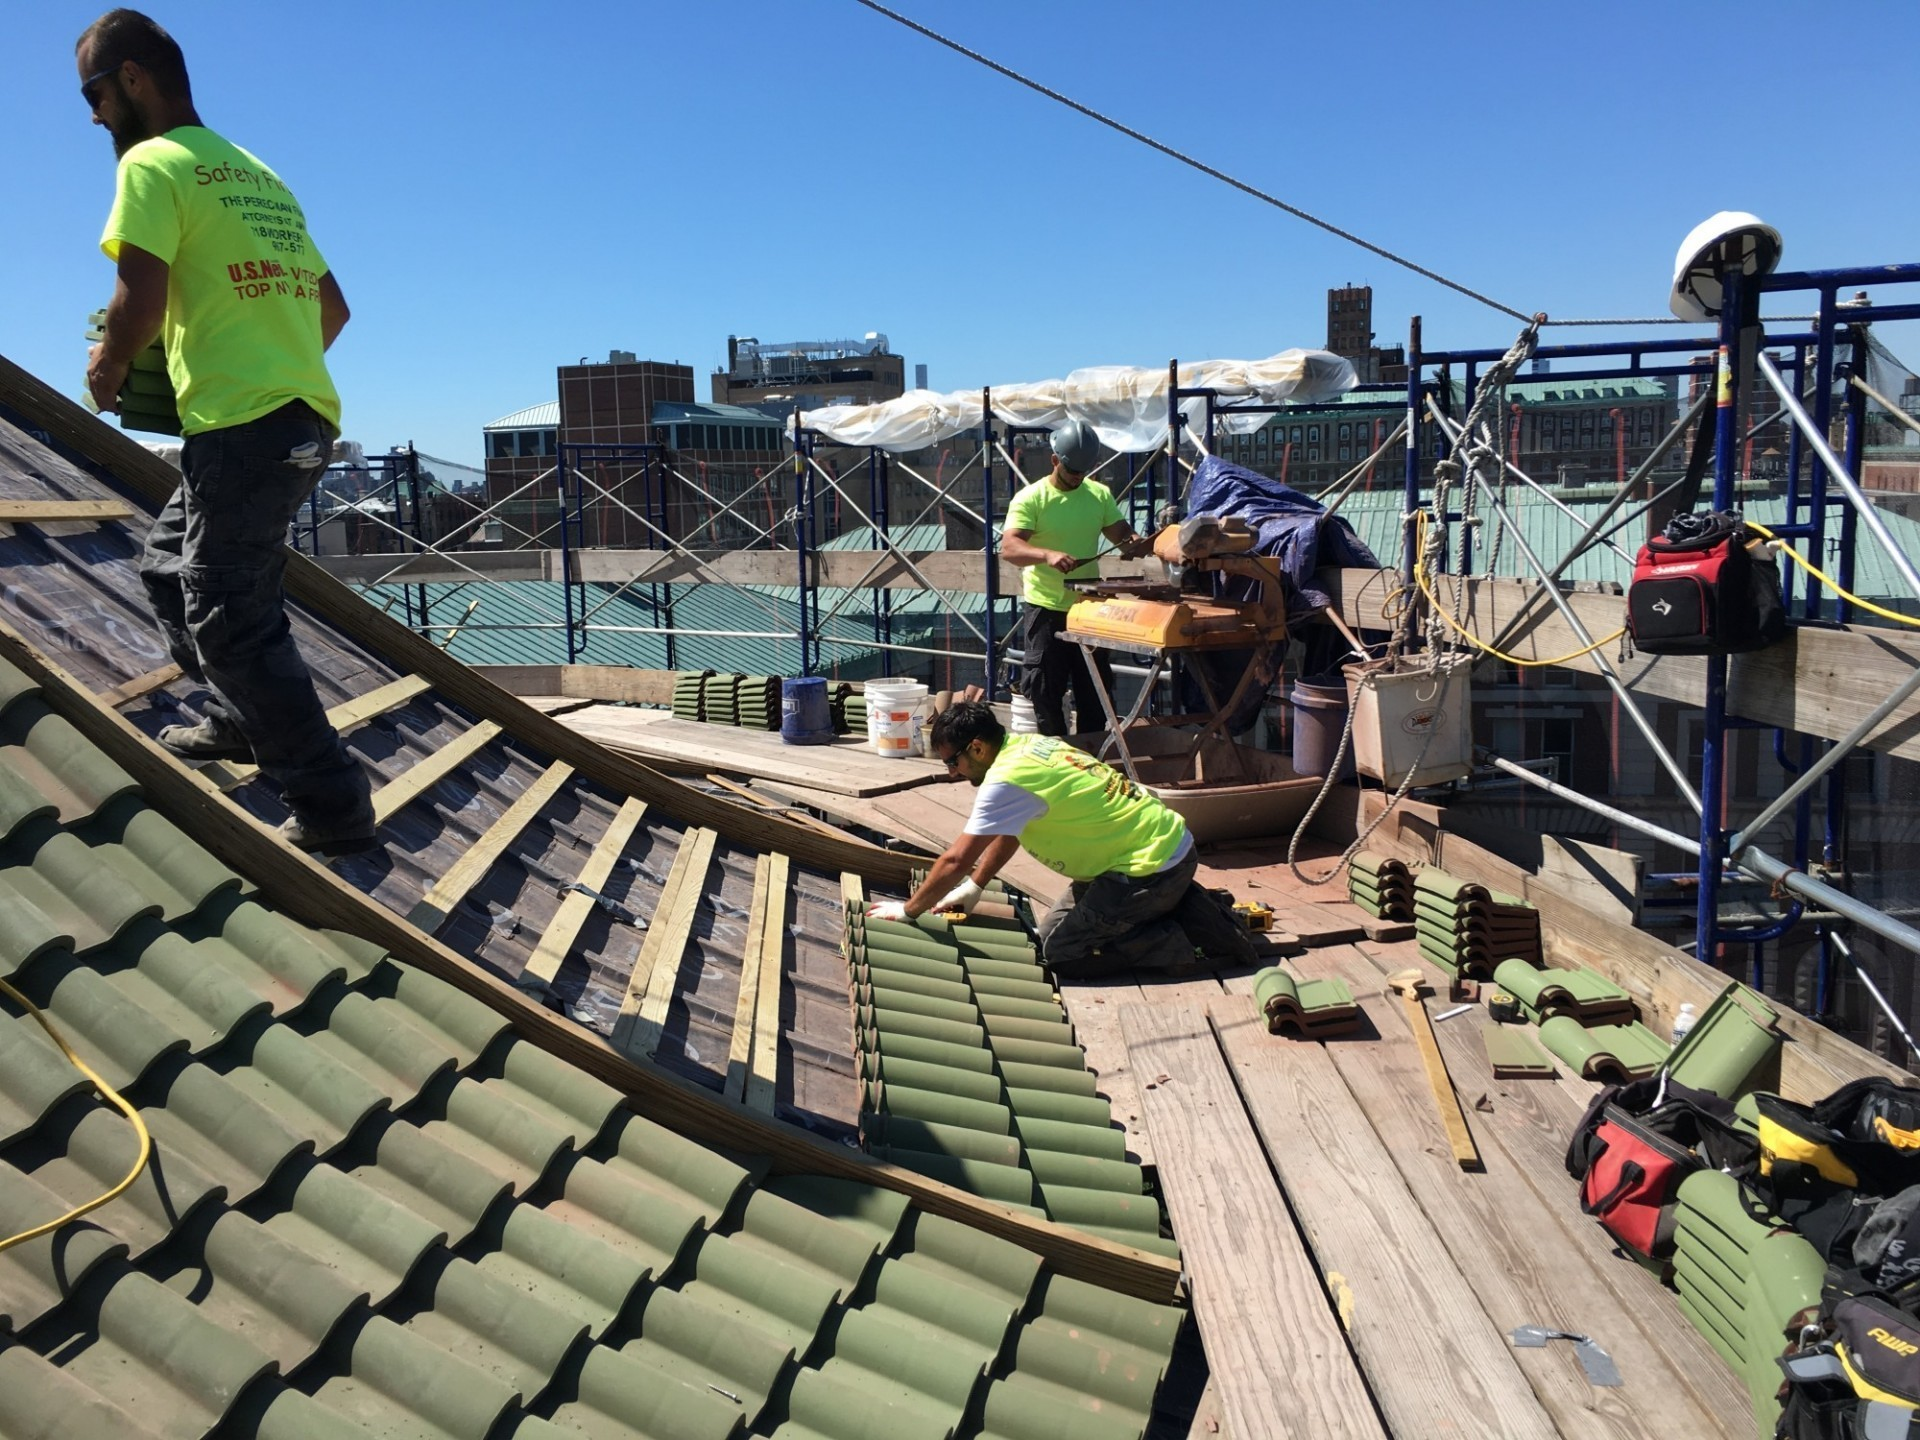 Workers replacing terra cotta roof tiles on top of the Chapel's roof during a cloudless, sunny day.